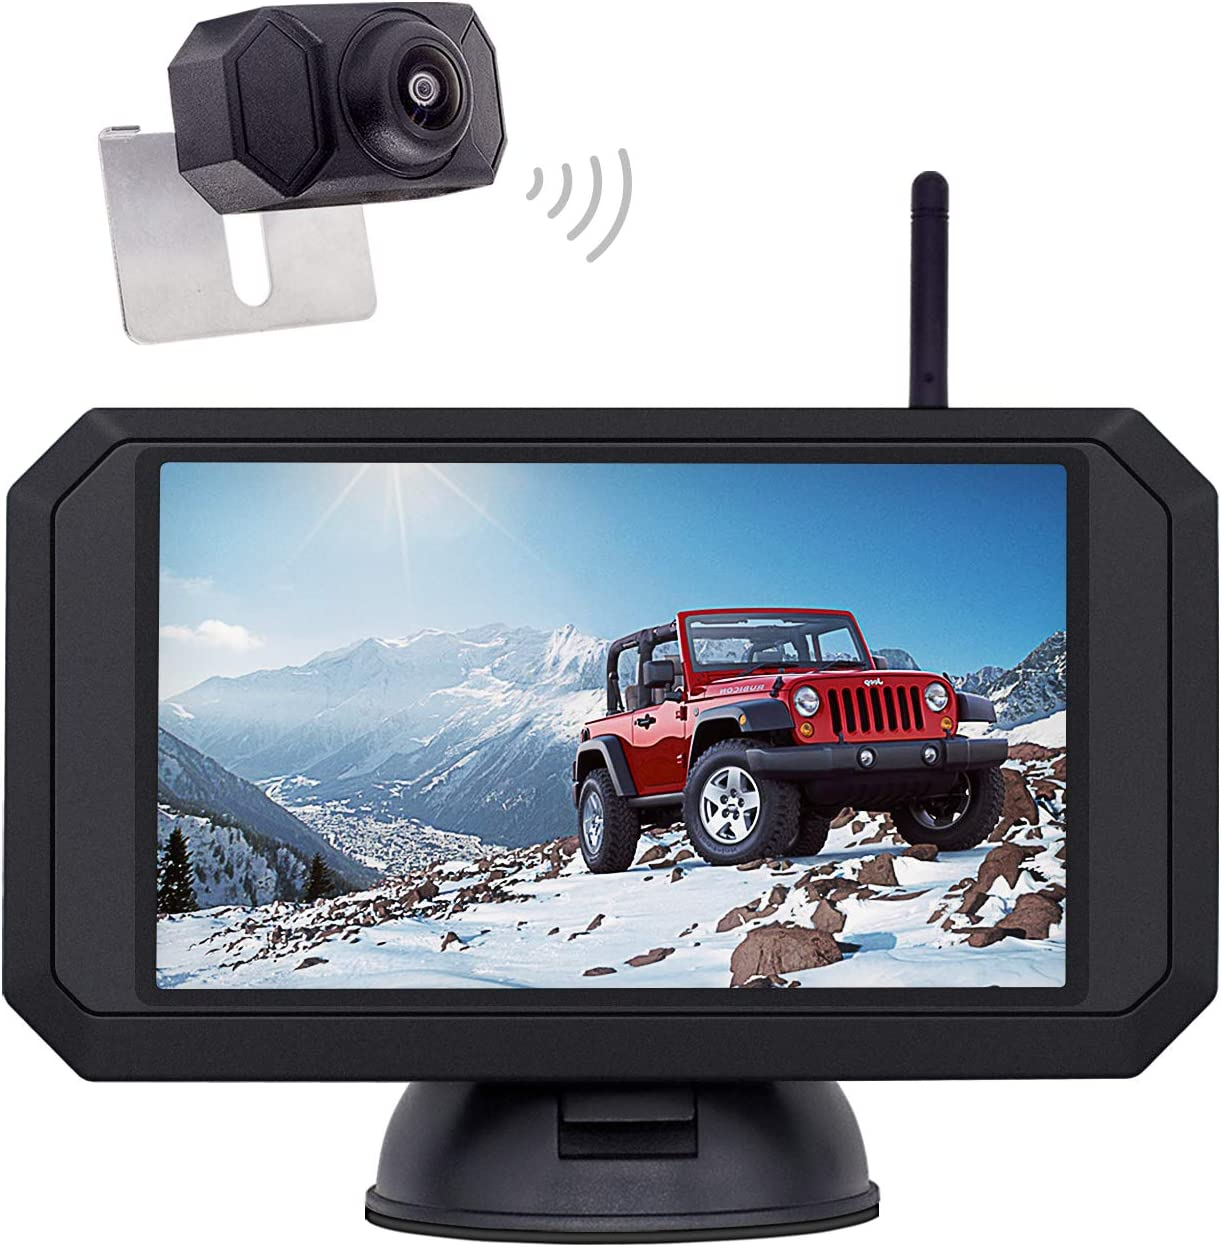 1080P Backup Camera and 5 inch Monitor Kit Digital Wireless Rear View Camera for Car SUV Truck RV Built-in Transmitter with Parking guidelines